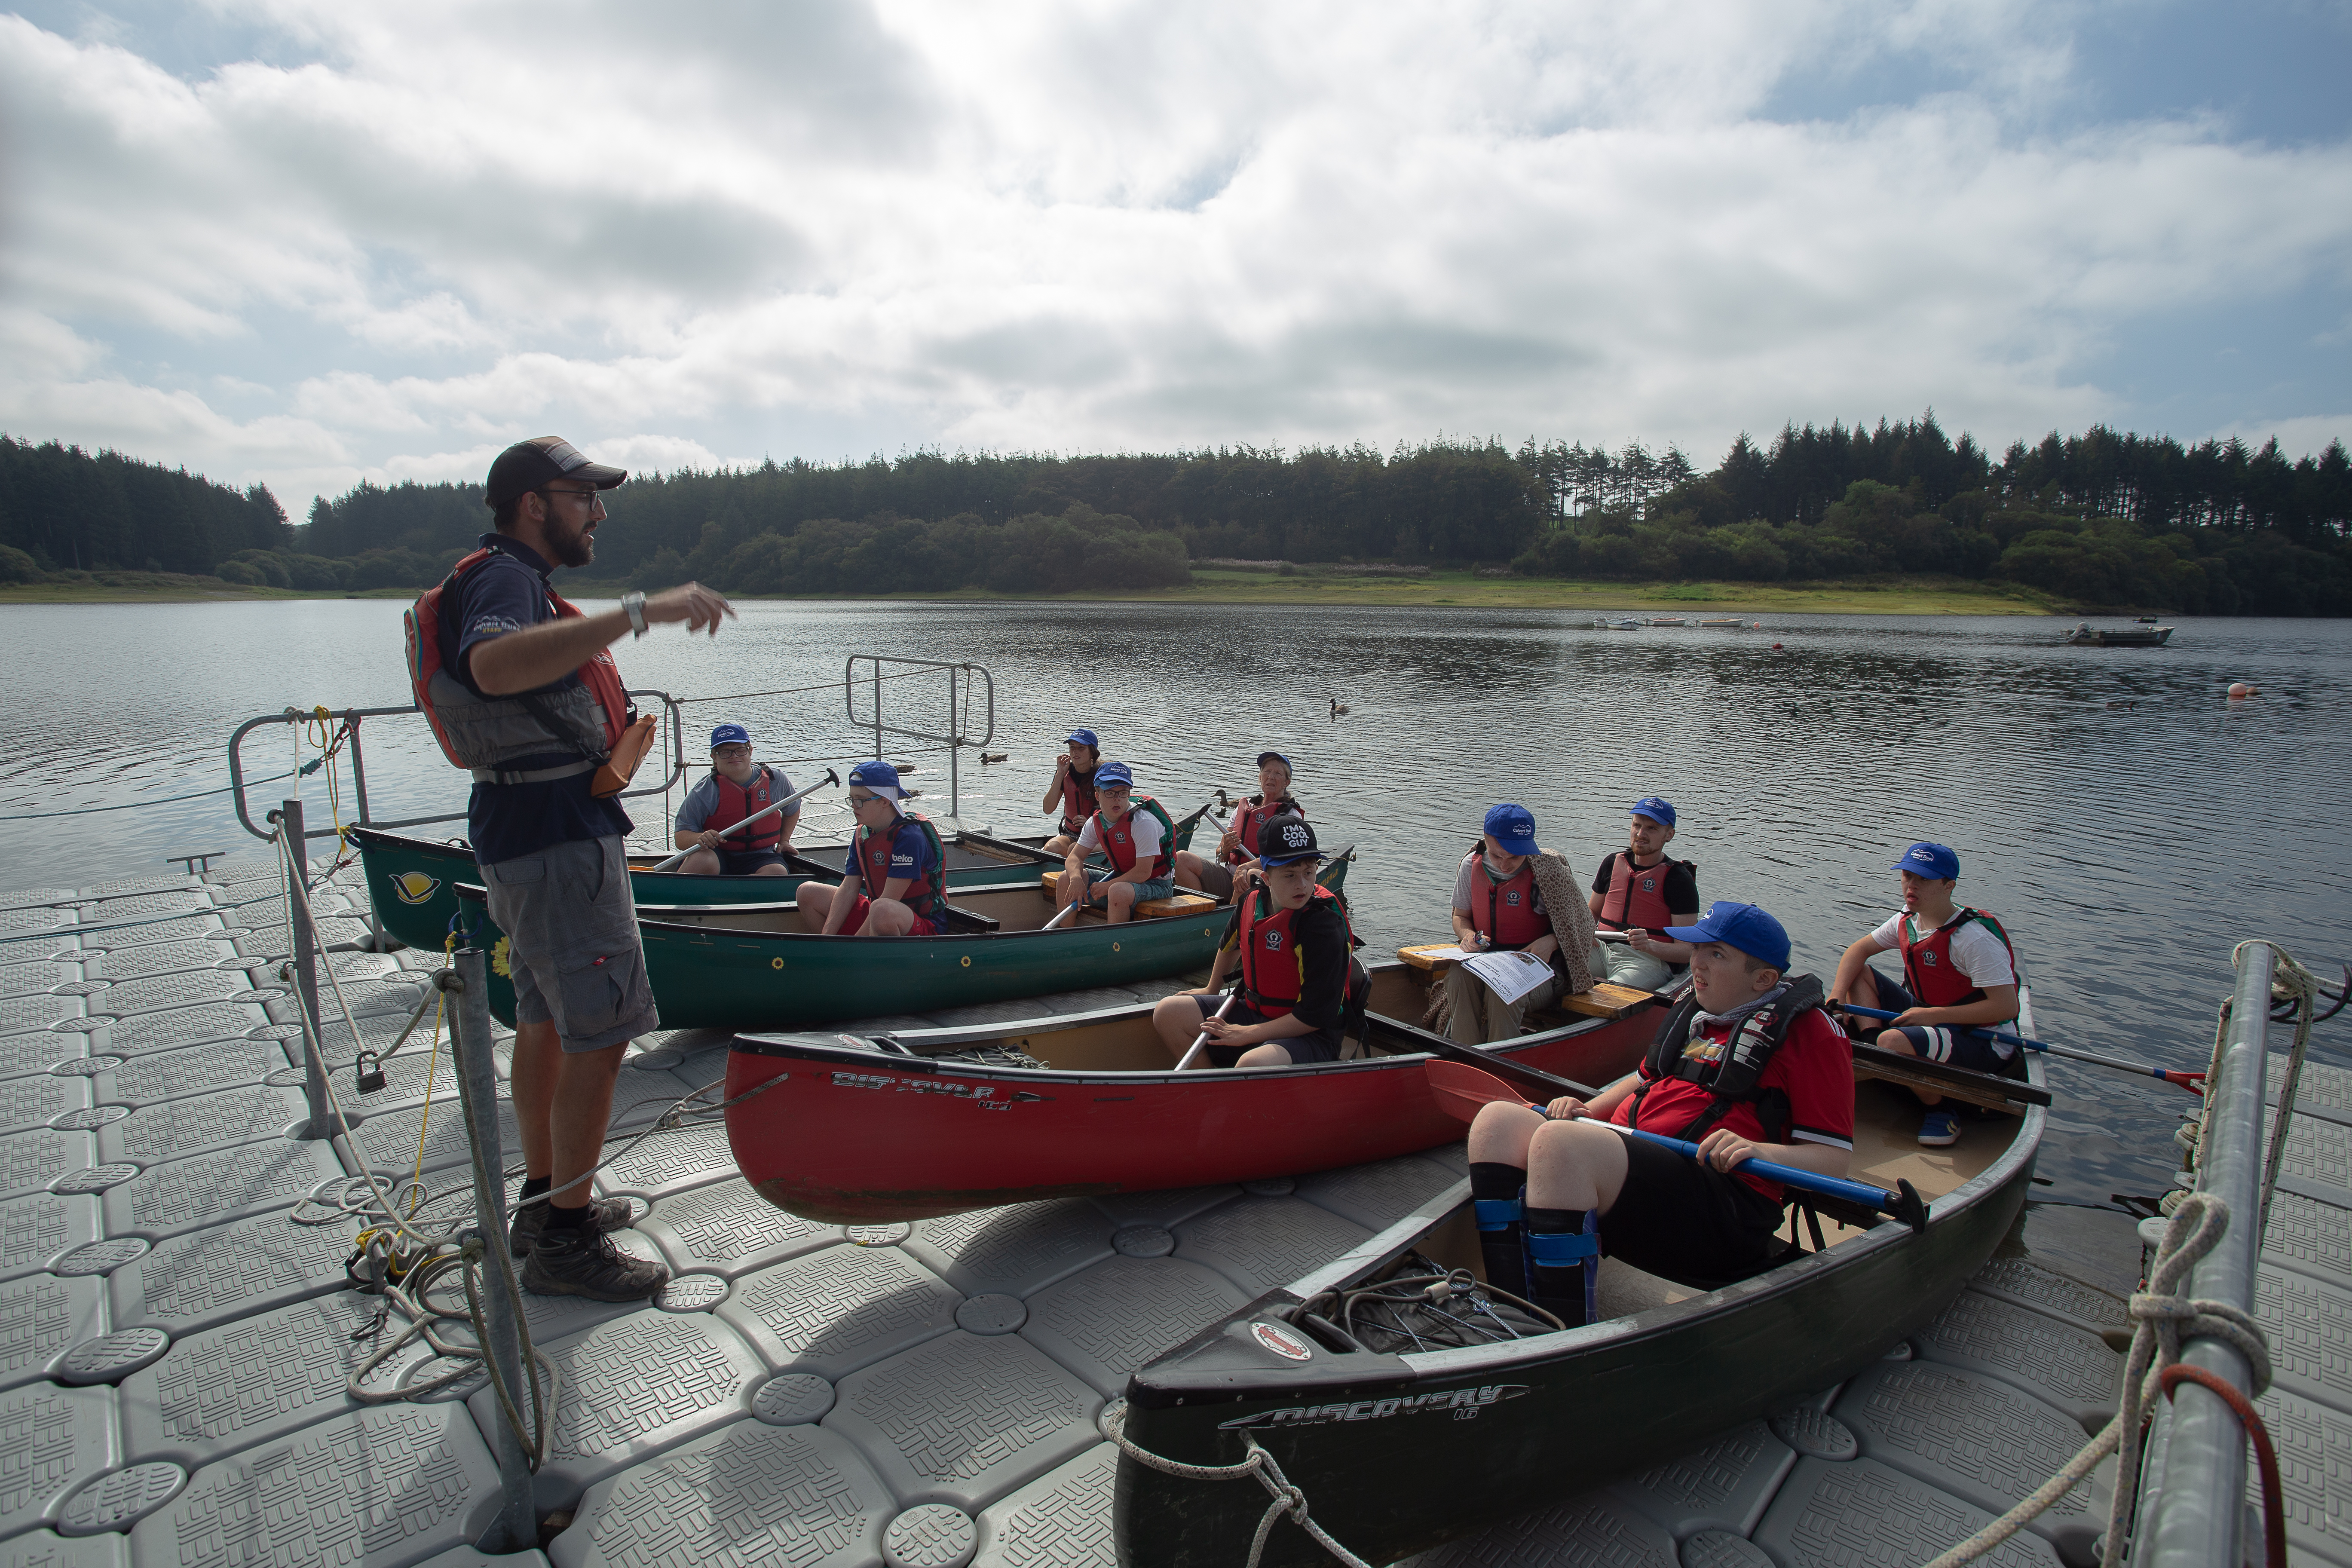 An instructor talking to a group doing canoeing